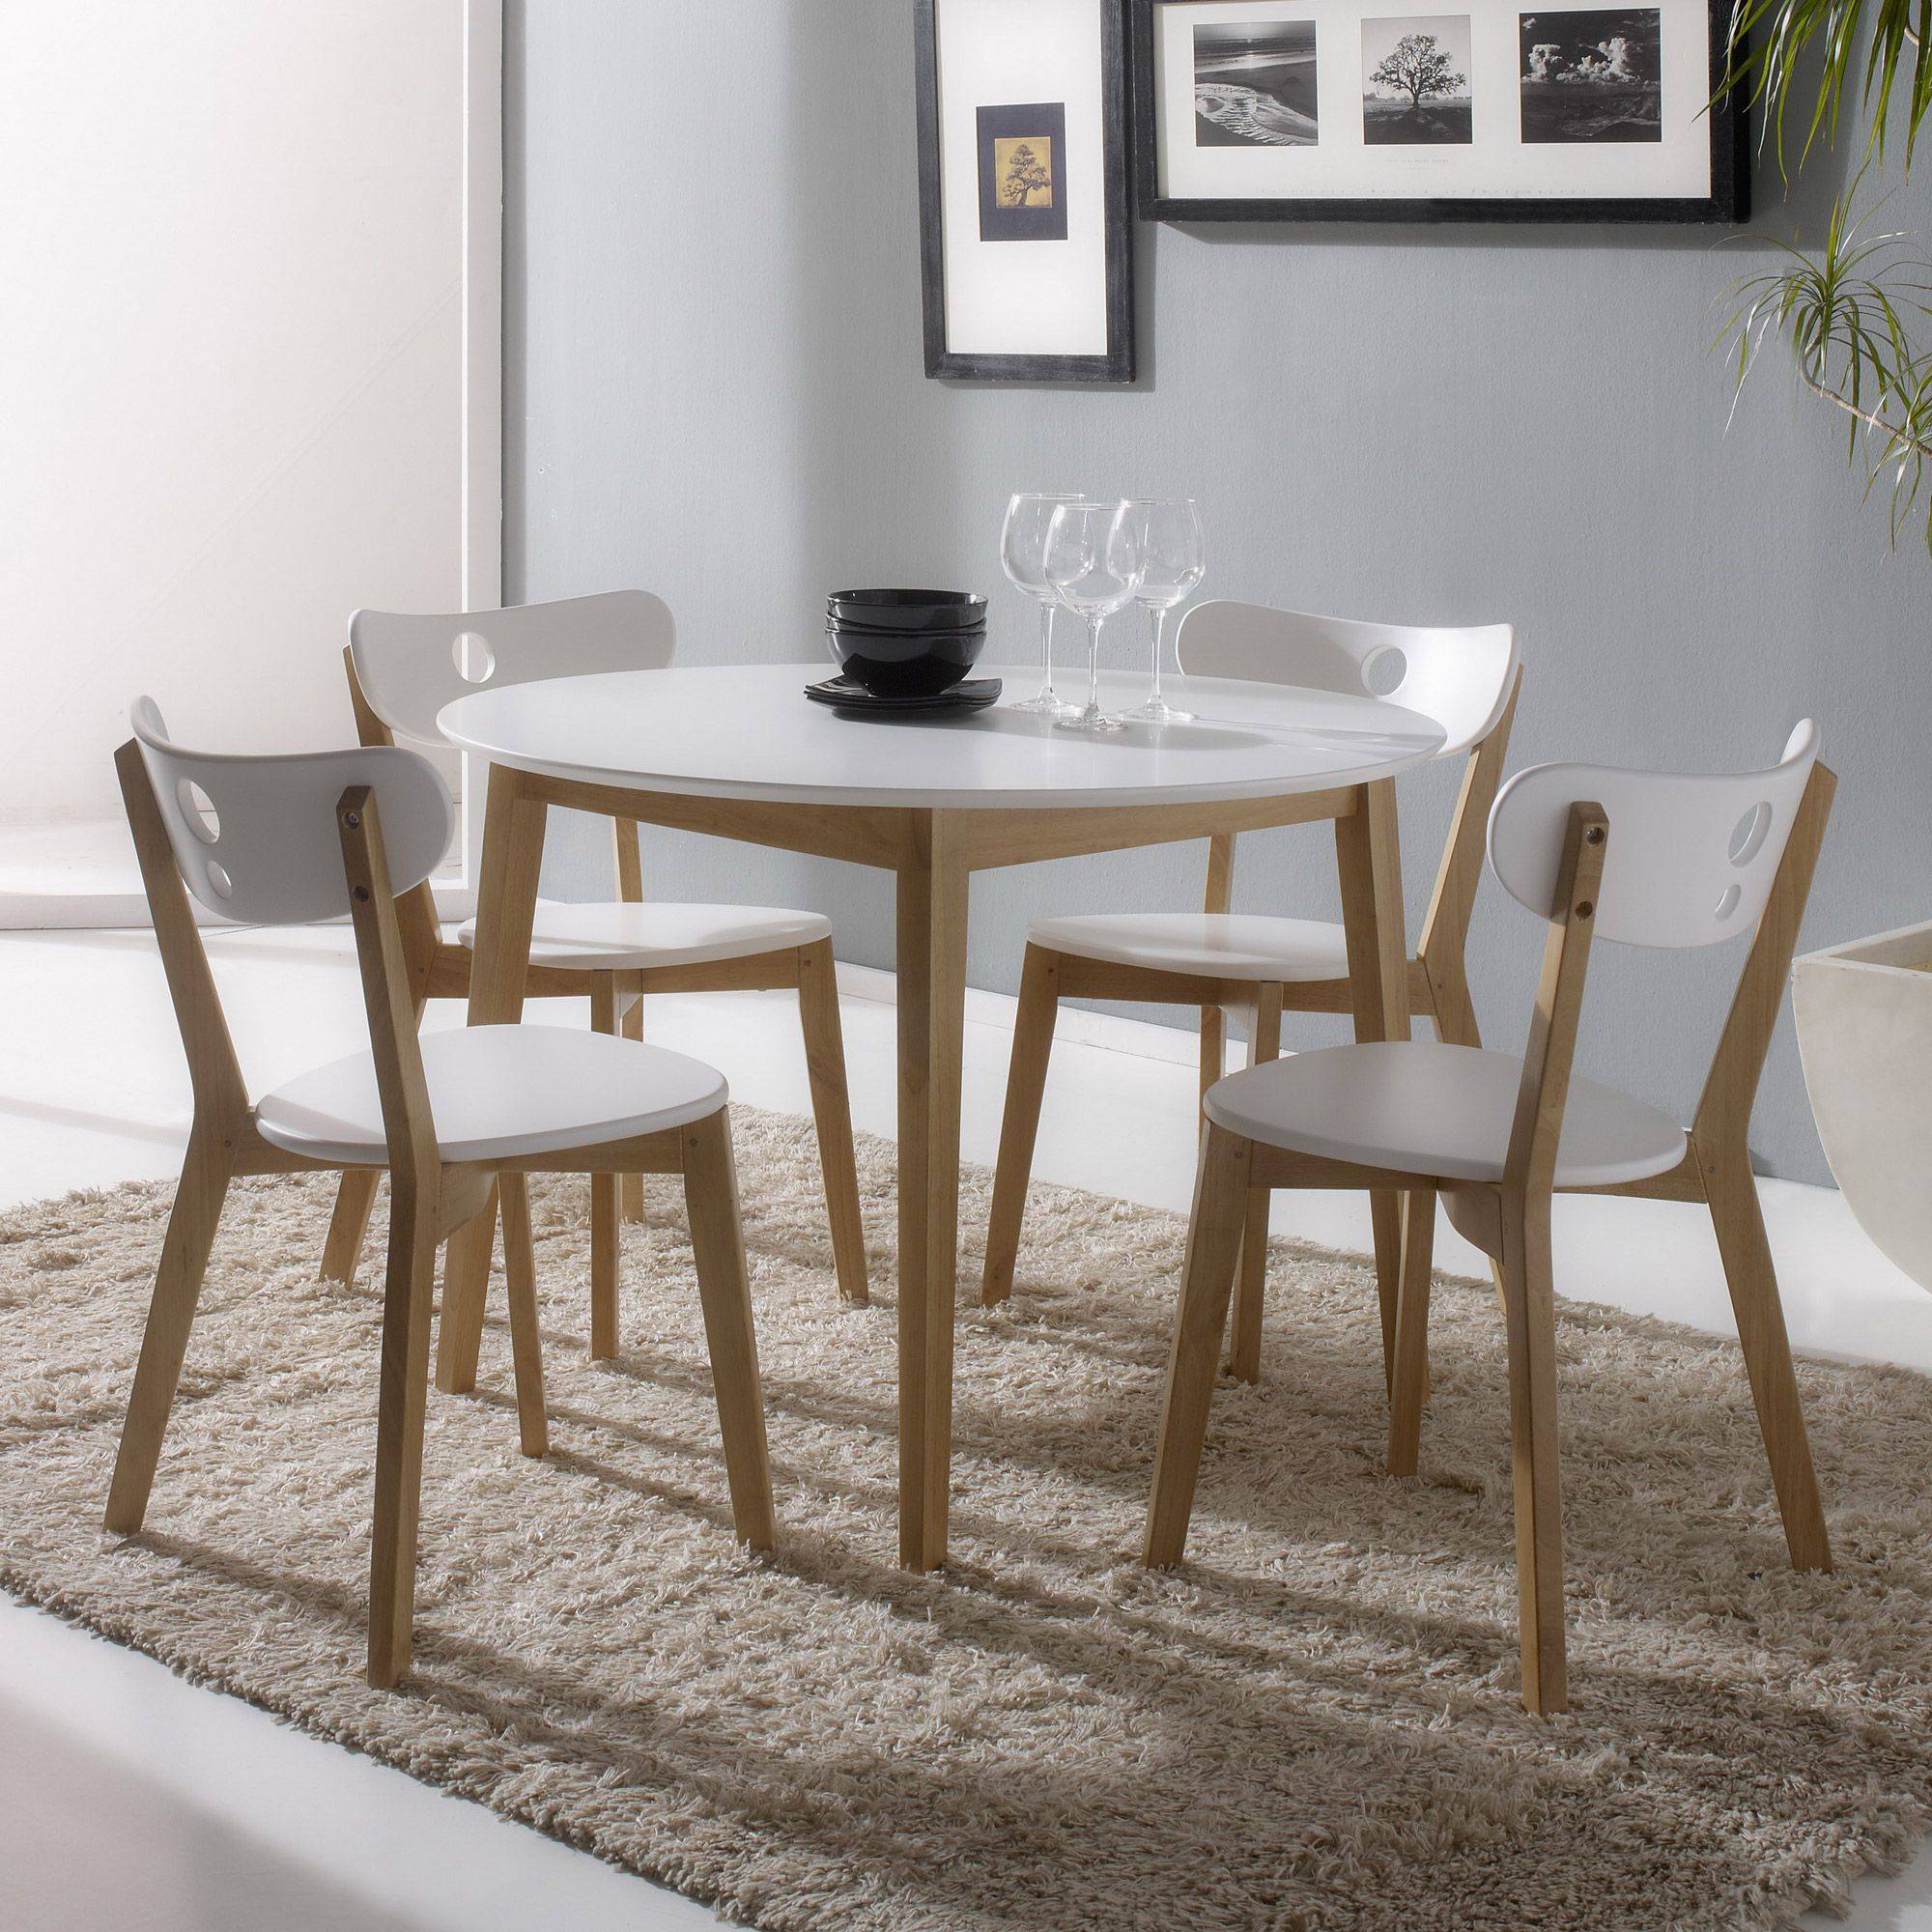 Ensemble table de salle manger ronde et 4 chaises en for Ensemble table chaise salle a manger